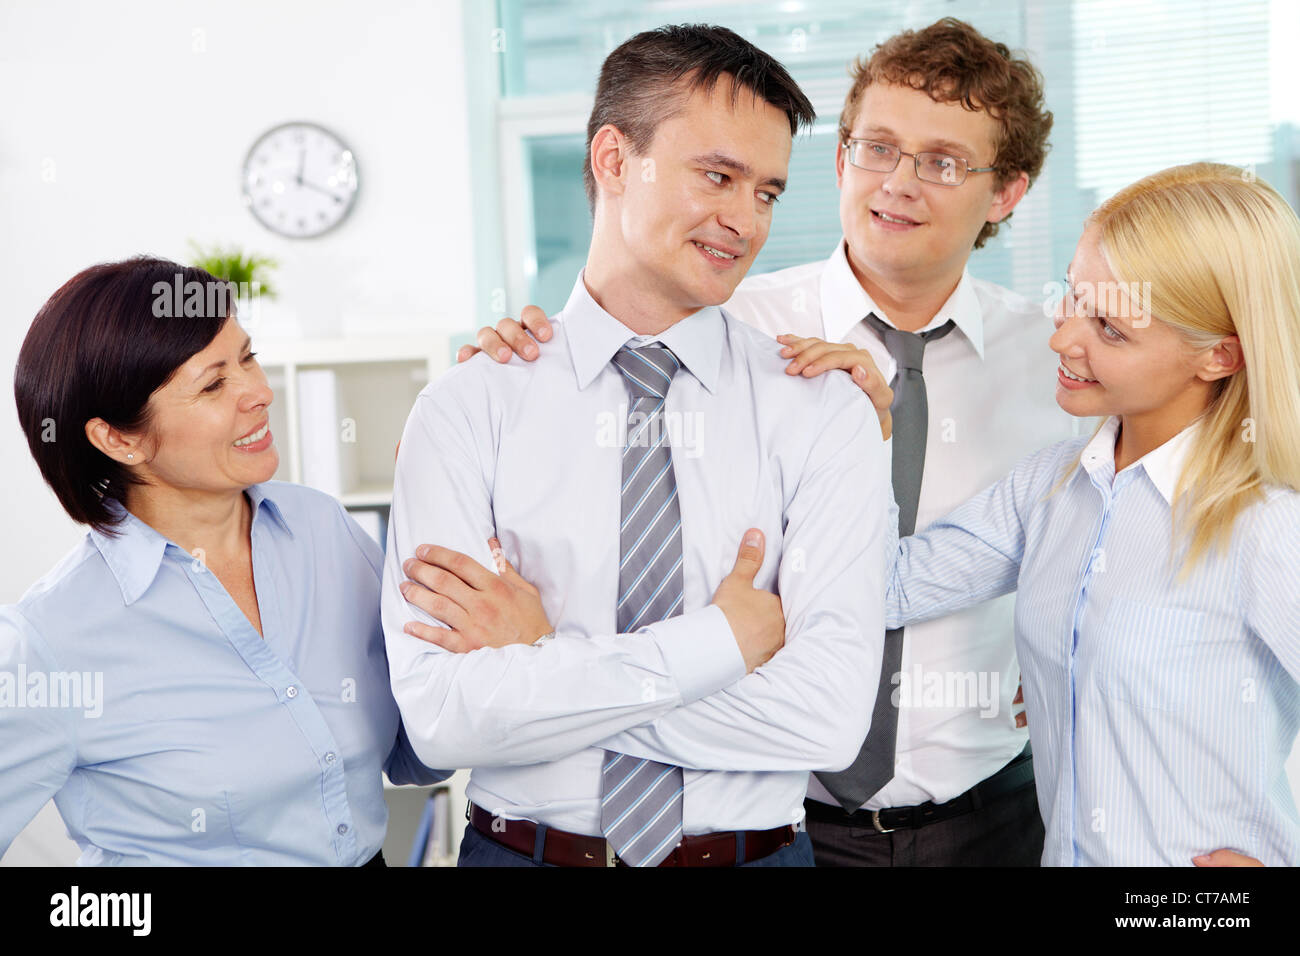 Group of friendly businesspeople adoring their leader in office - Stock Image